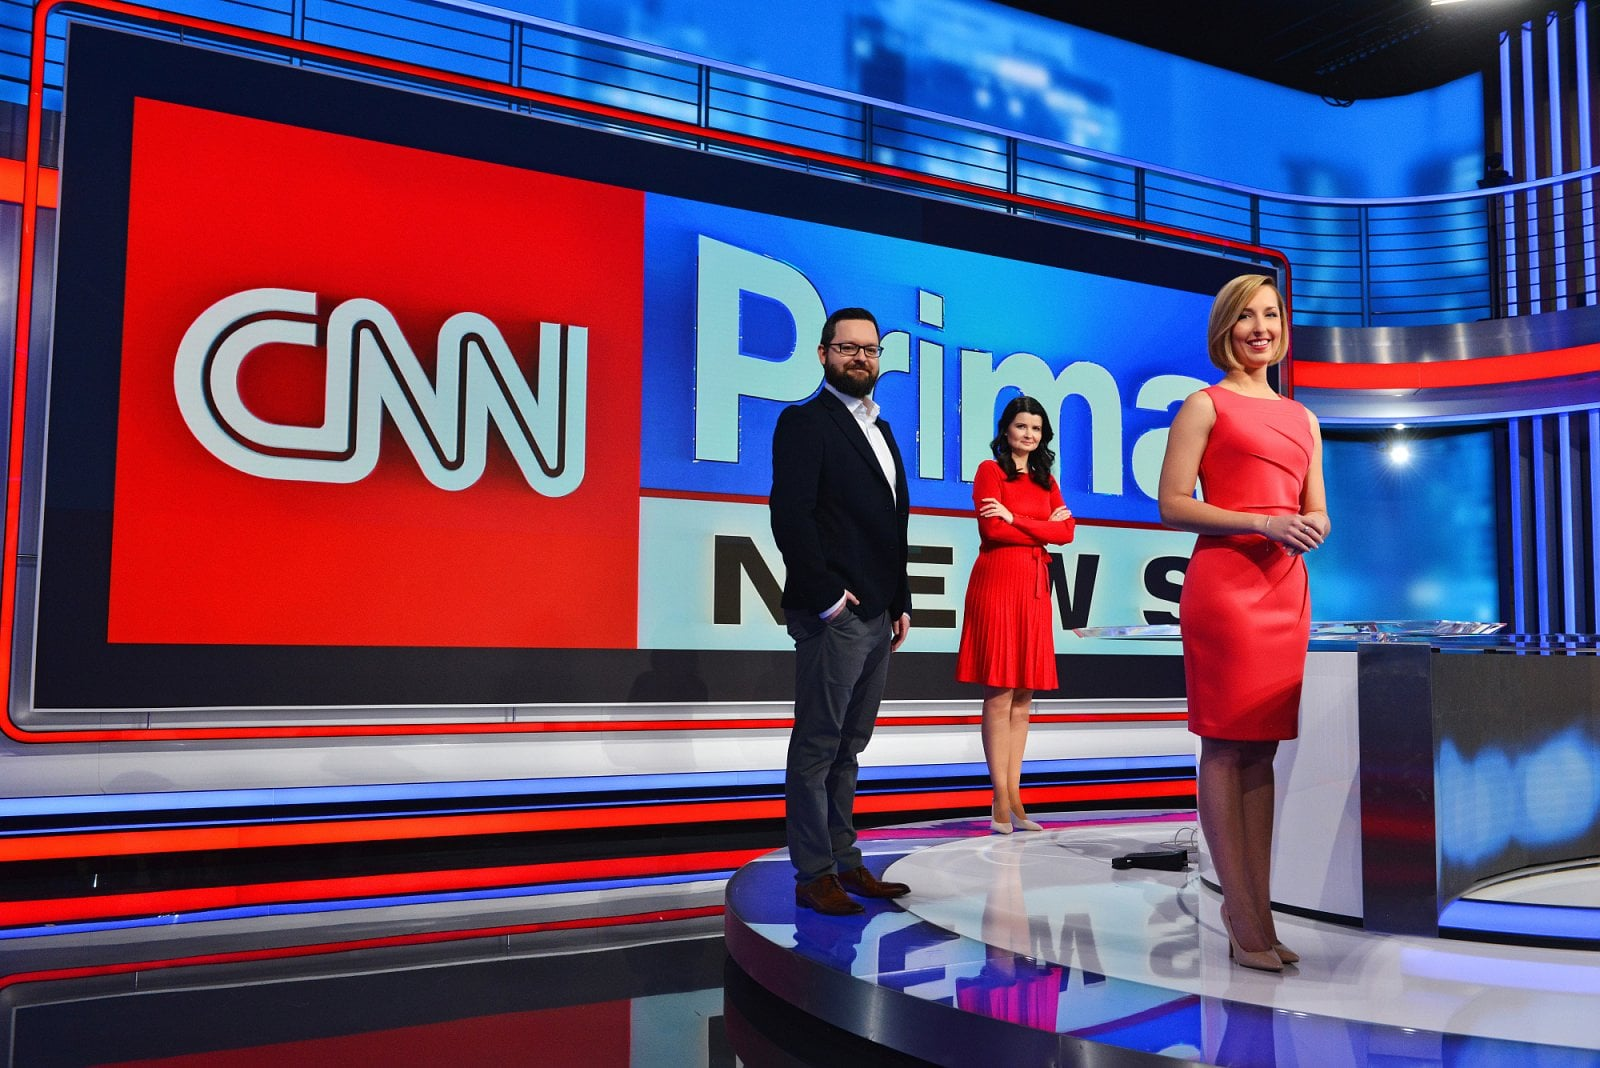 Tv Teams Up With Cnn To Launch News Channel